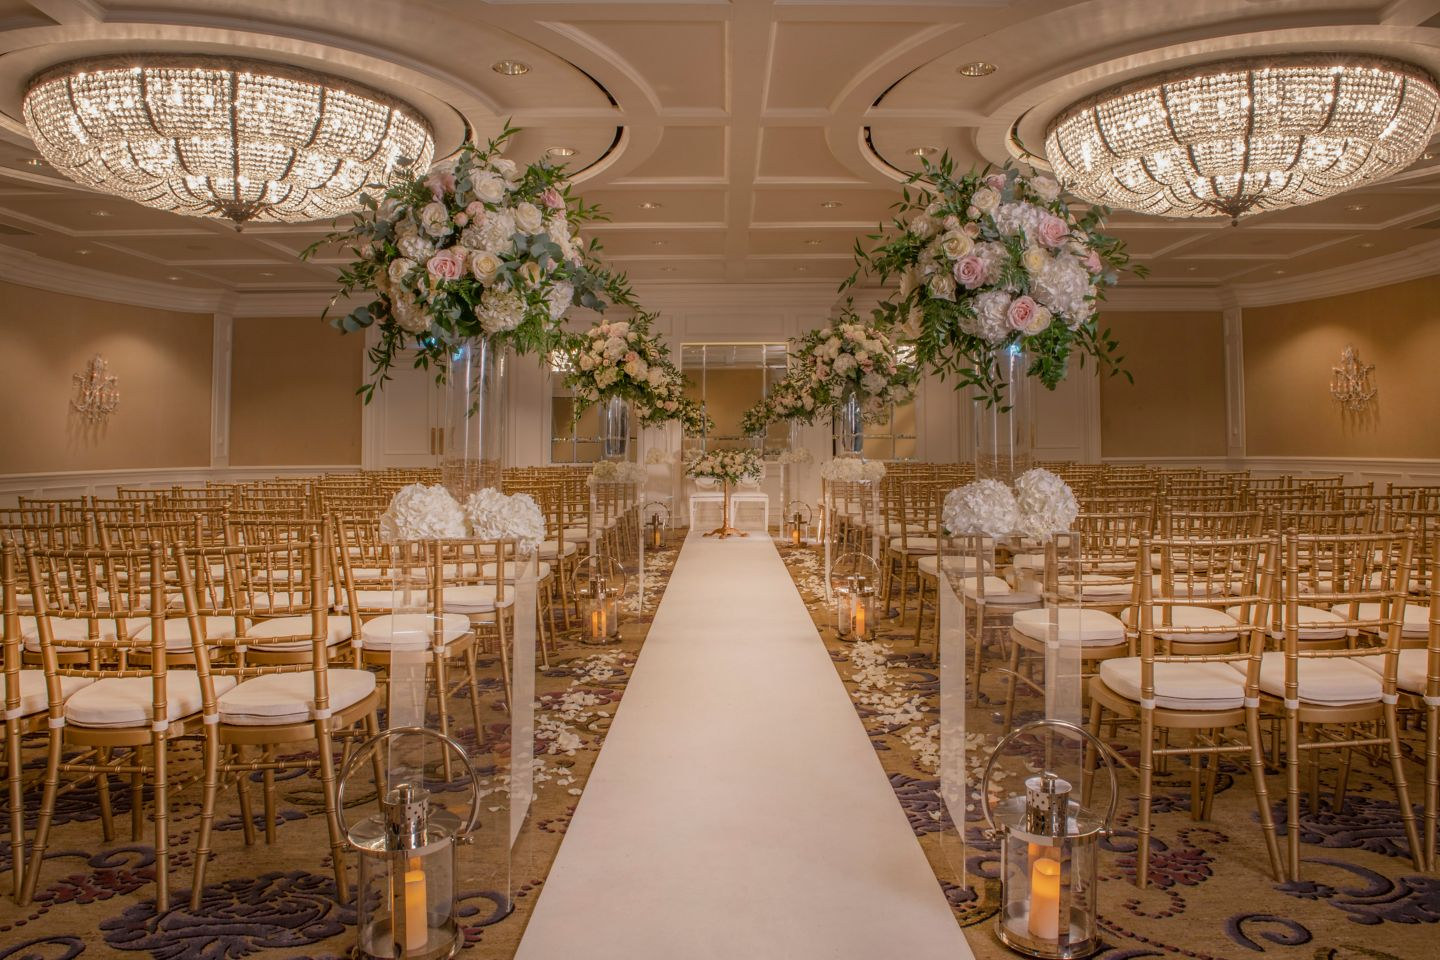 Wedding ceremony set up with flower arrangement and chiavari chairs in the grand Ballroom at the Old Course Hotel, Golf Resort & Spa.